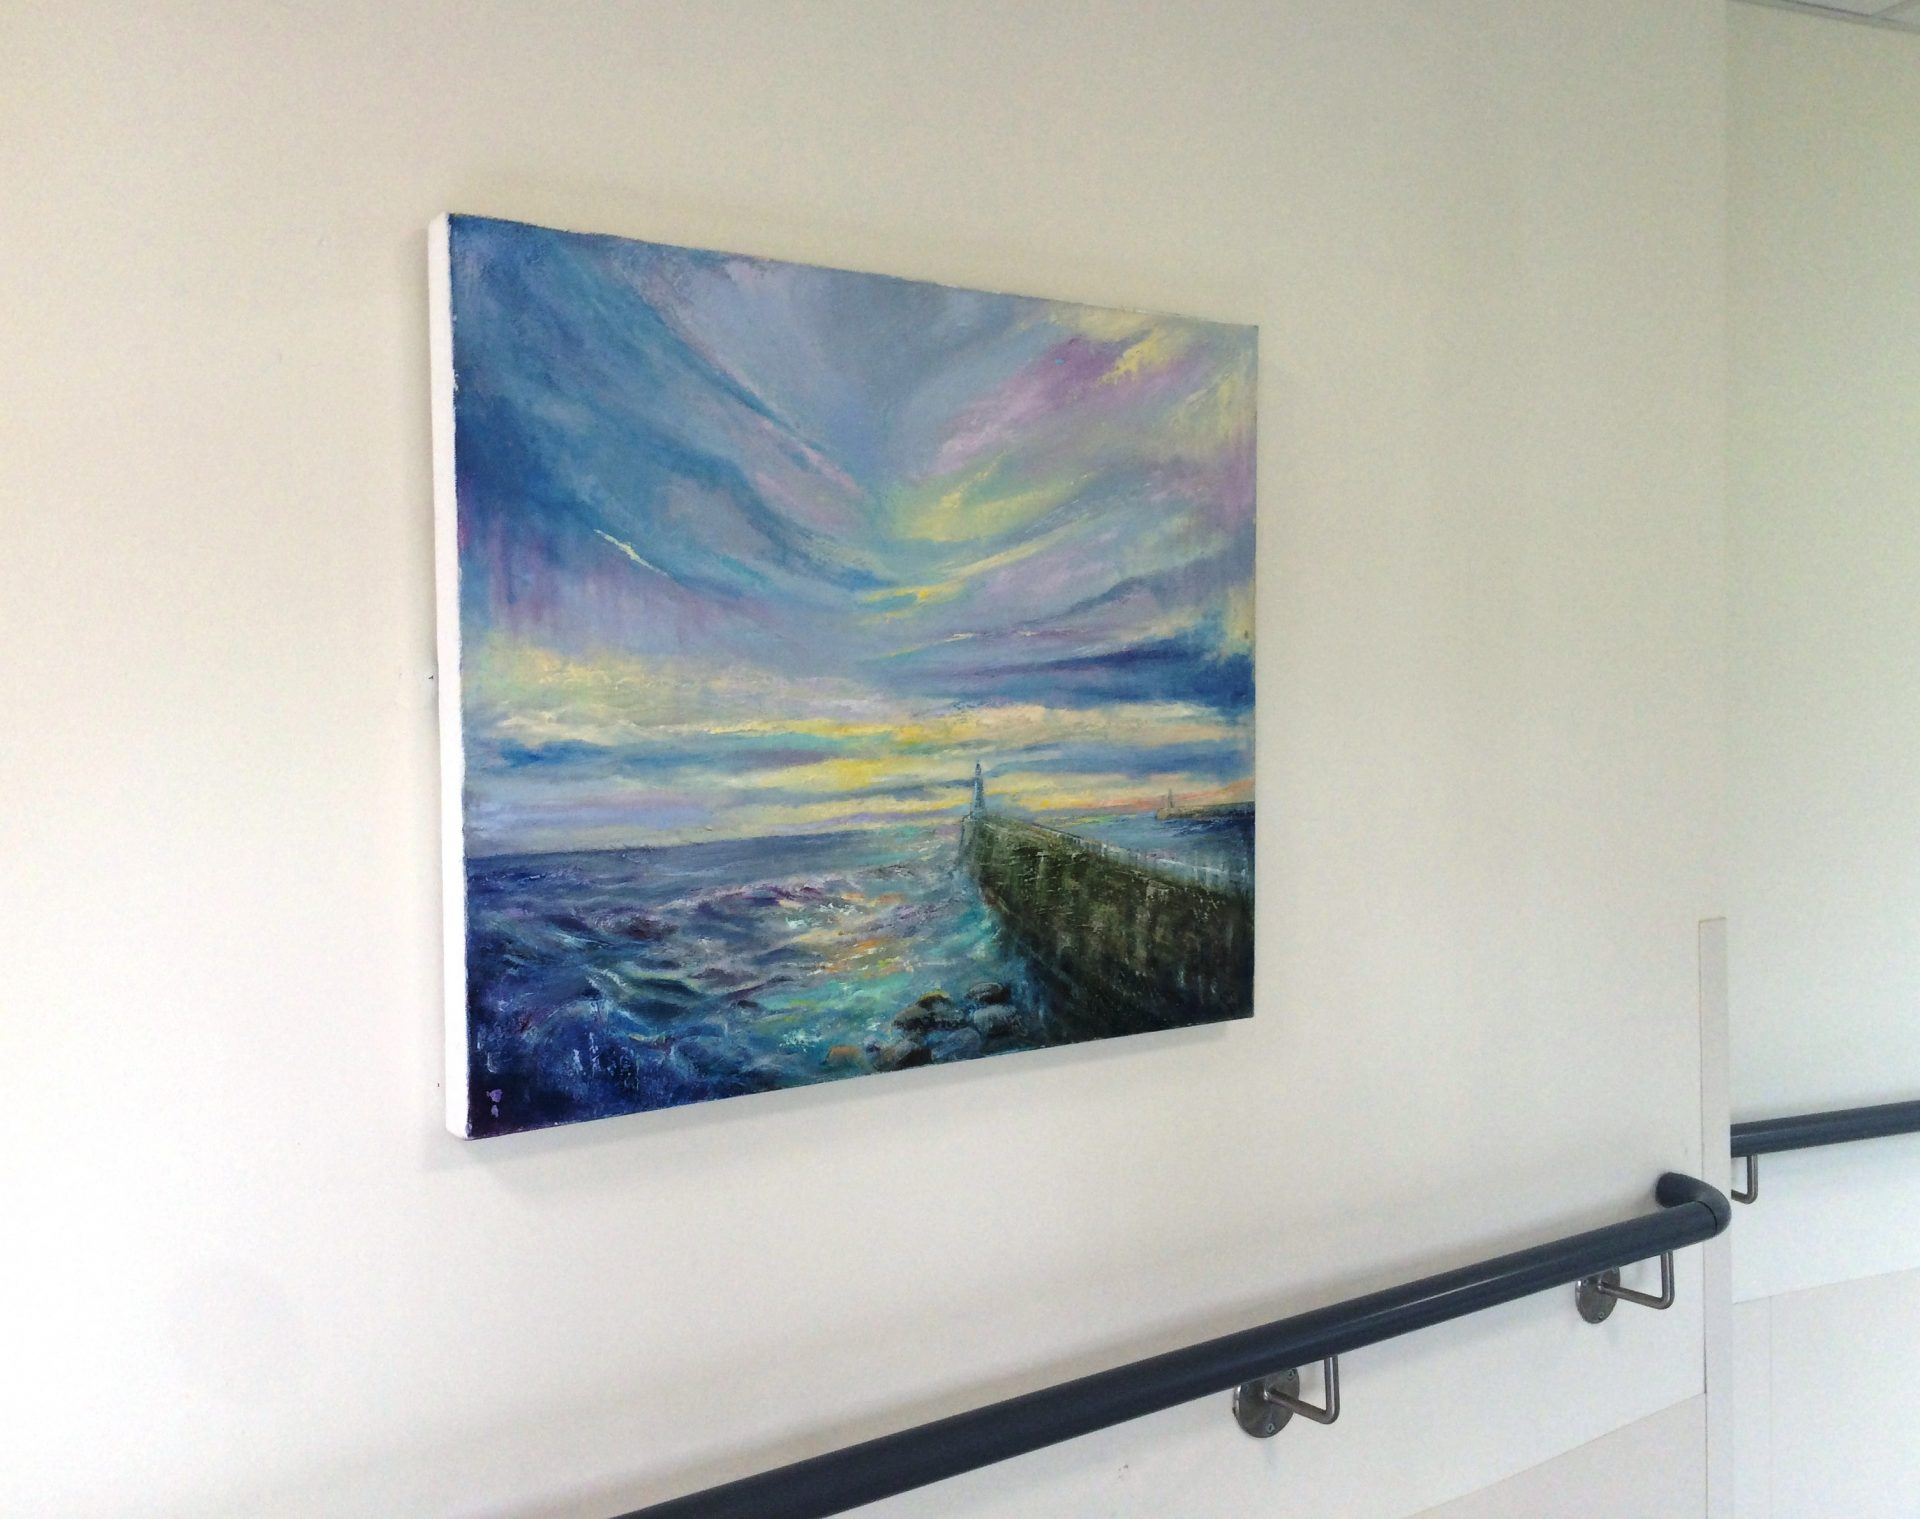 Painting by Linda Marriott on display at The Northumbria Hospital, May 2018